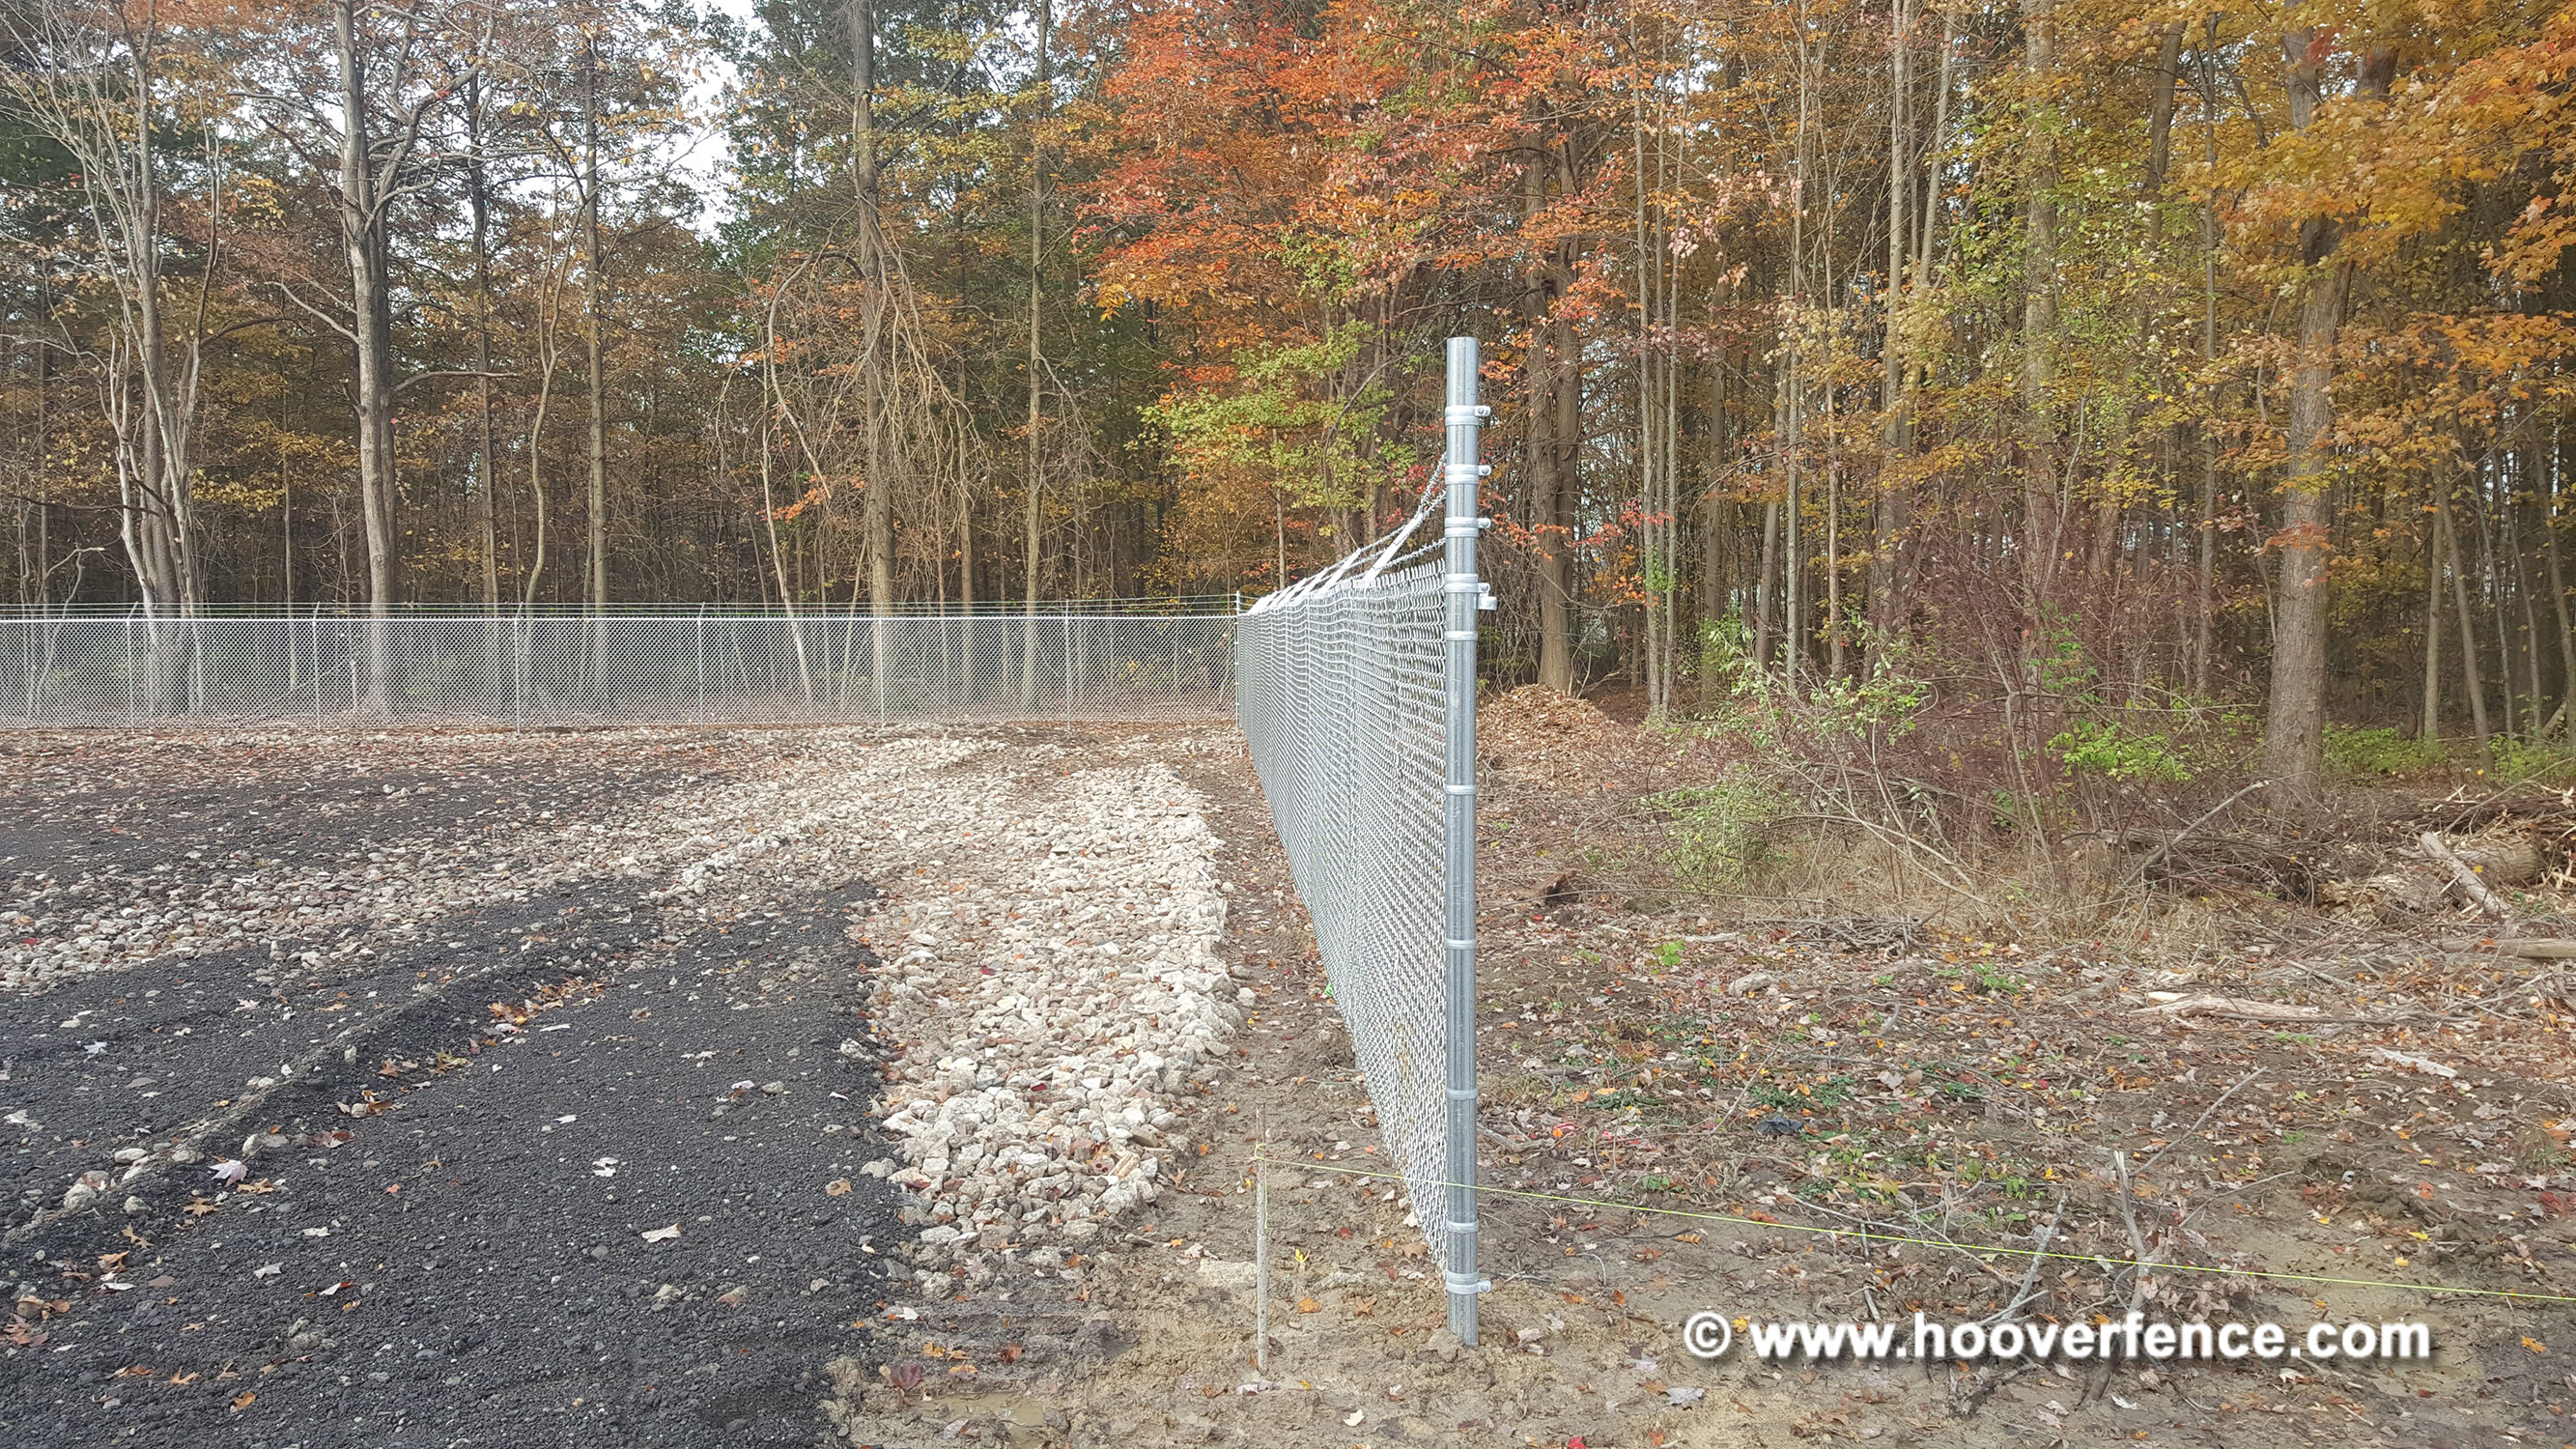 6' High Chain Link Fence with Barbed Wire Installation - Atwater, Ohio